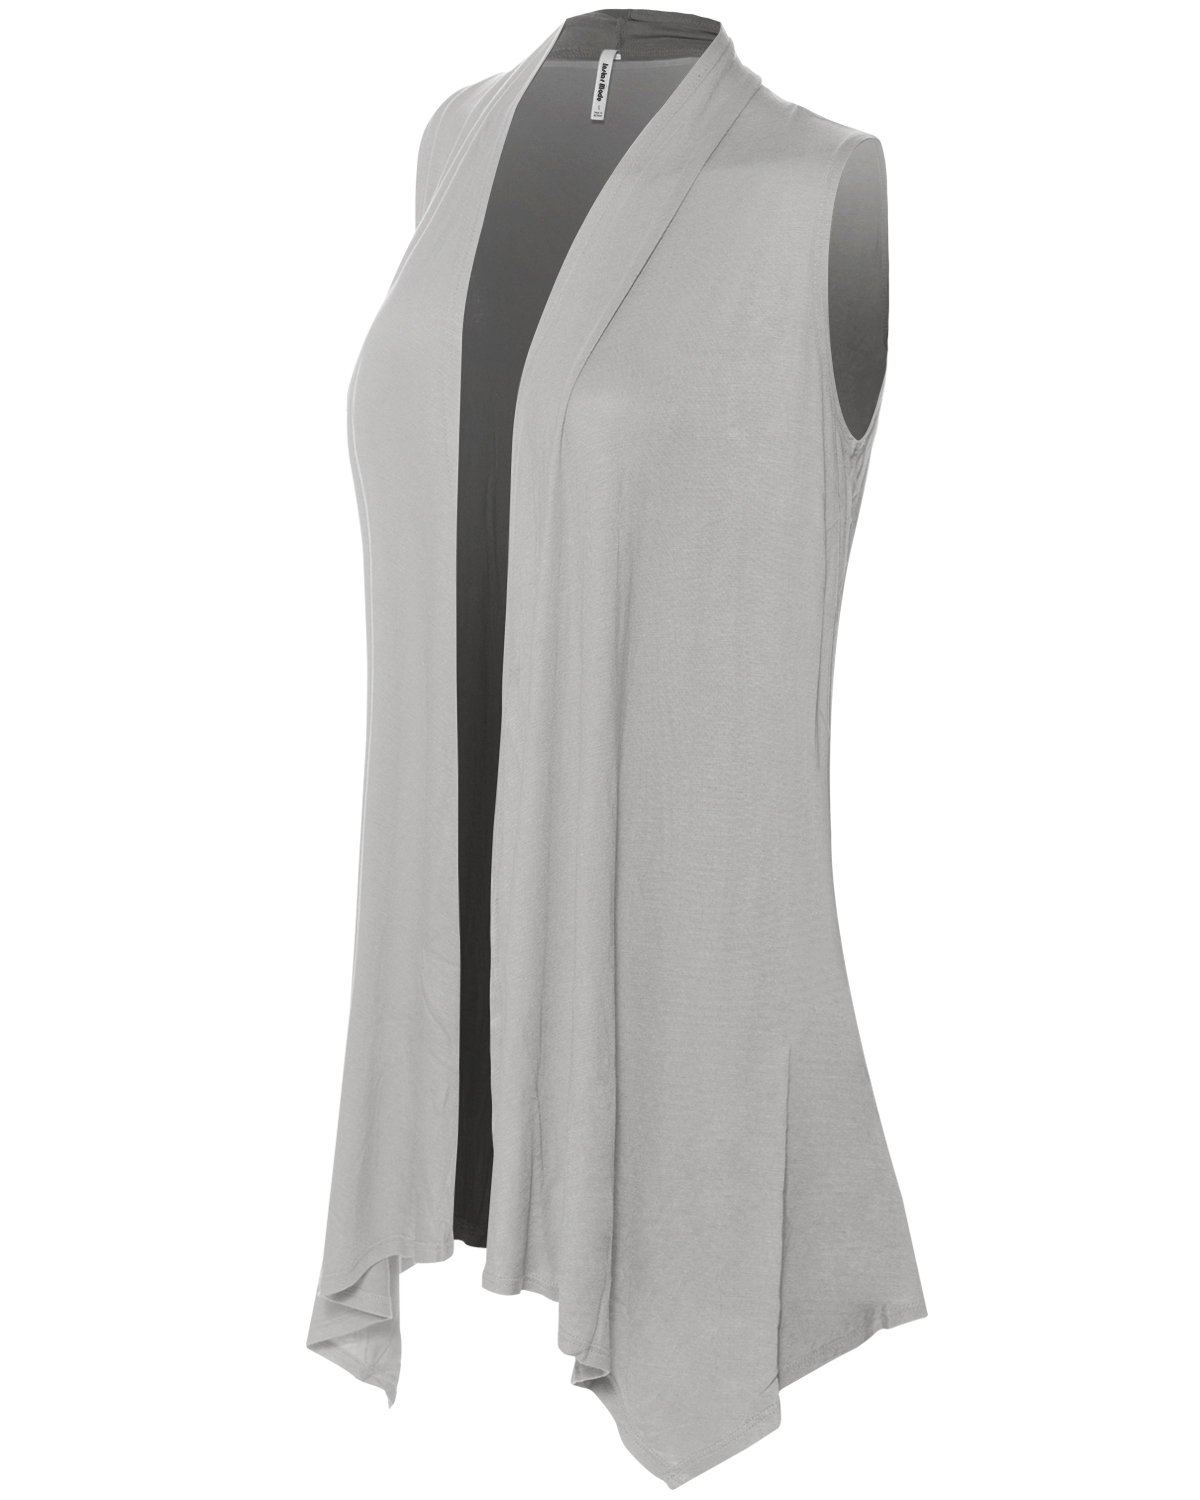 Instar Mode Women's Lightweight Sleeveless Draped Open Front Cardigan Vest